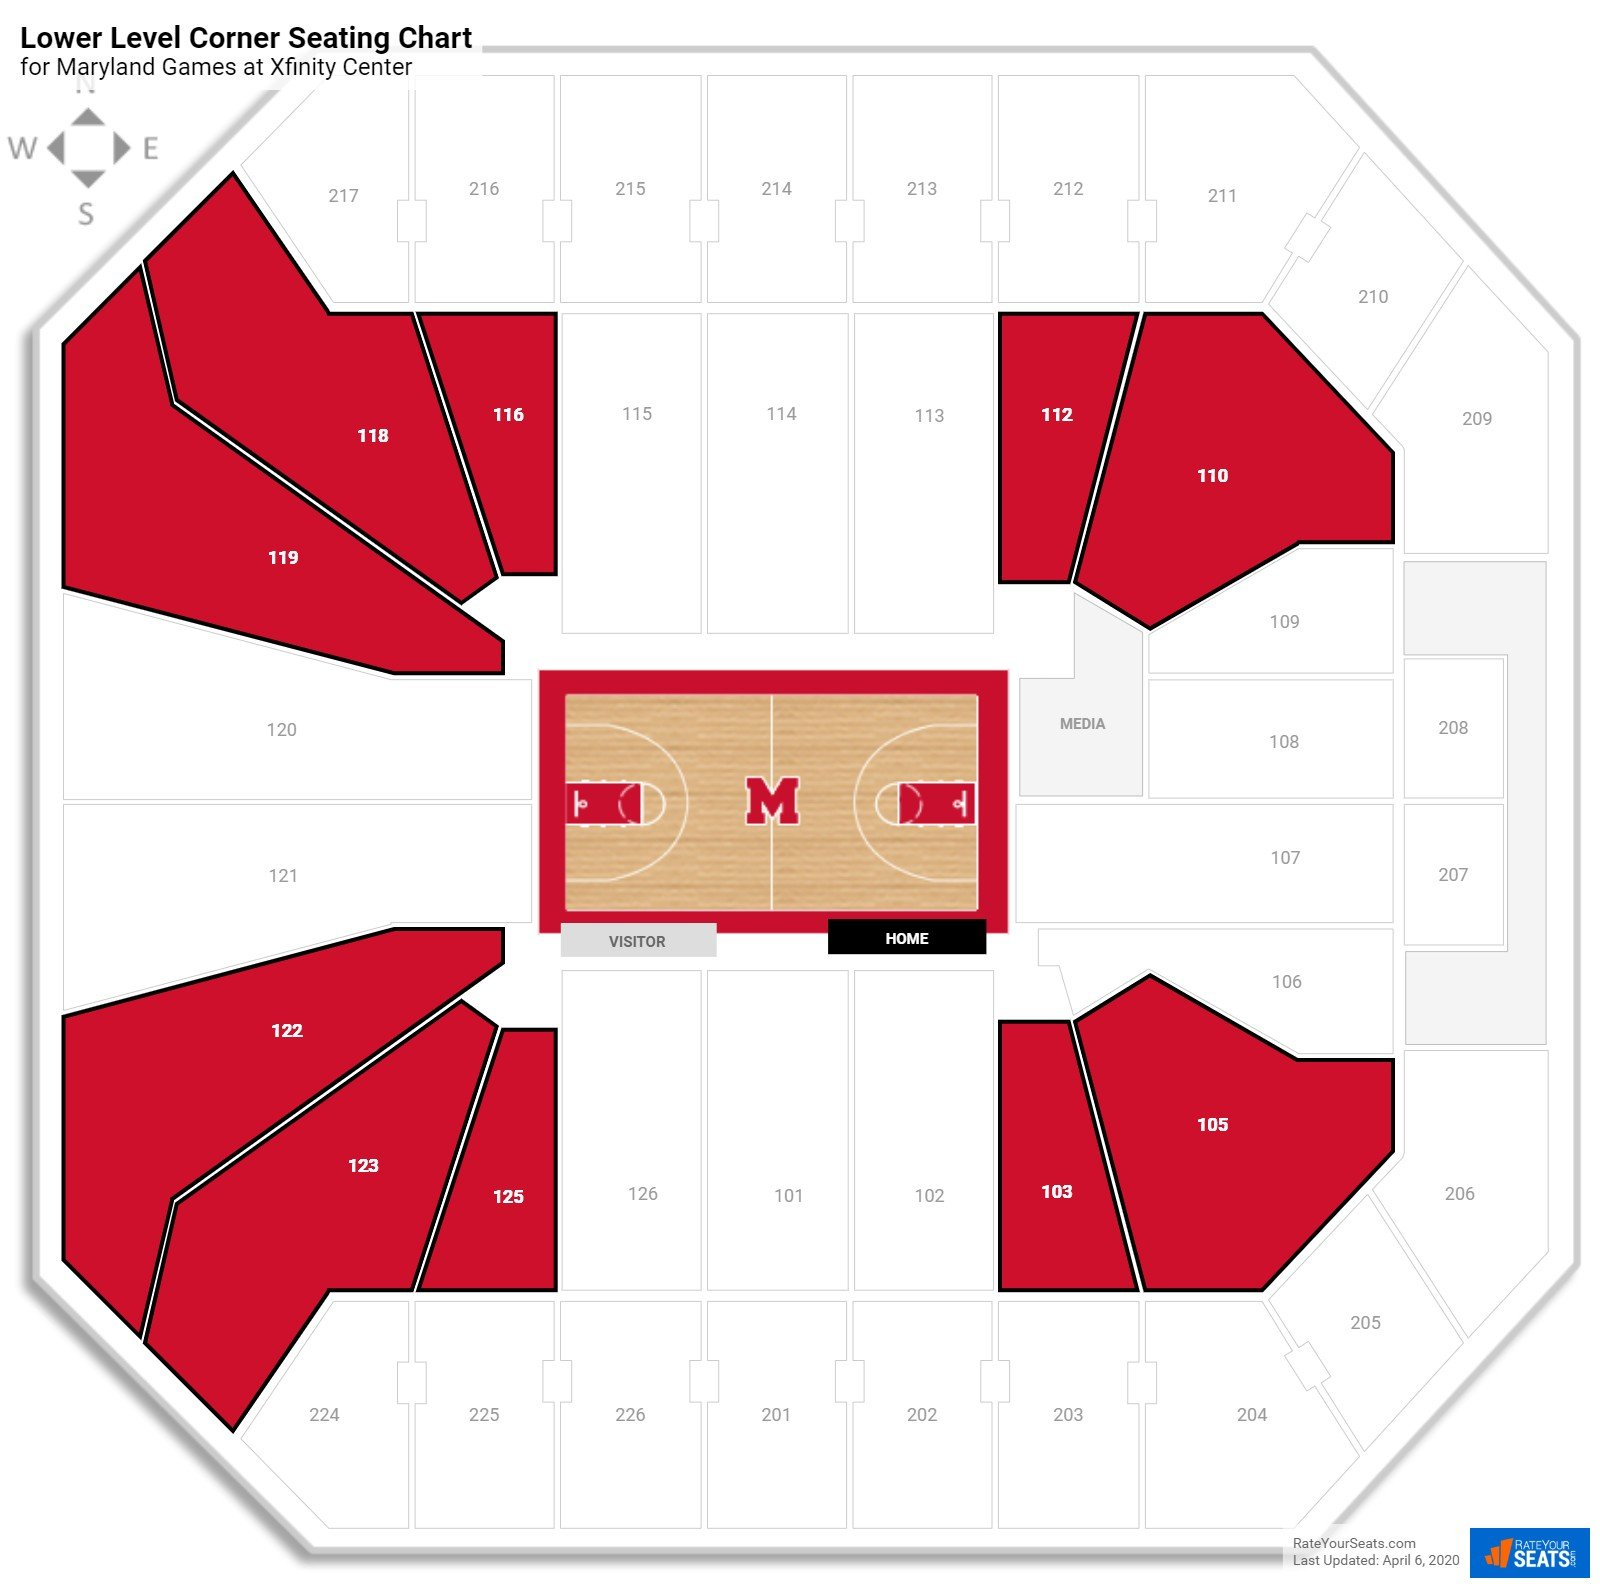 Comcast Center Lower Level Corner seating chart